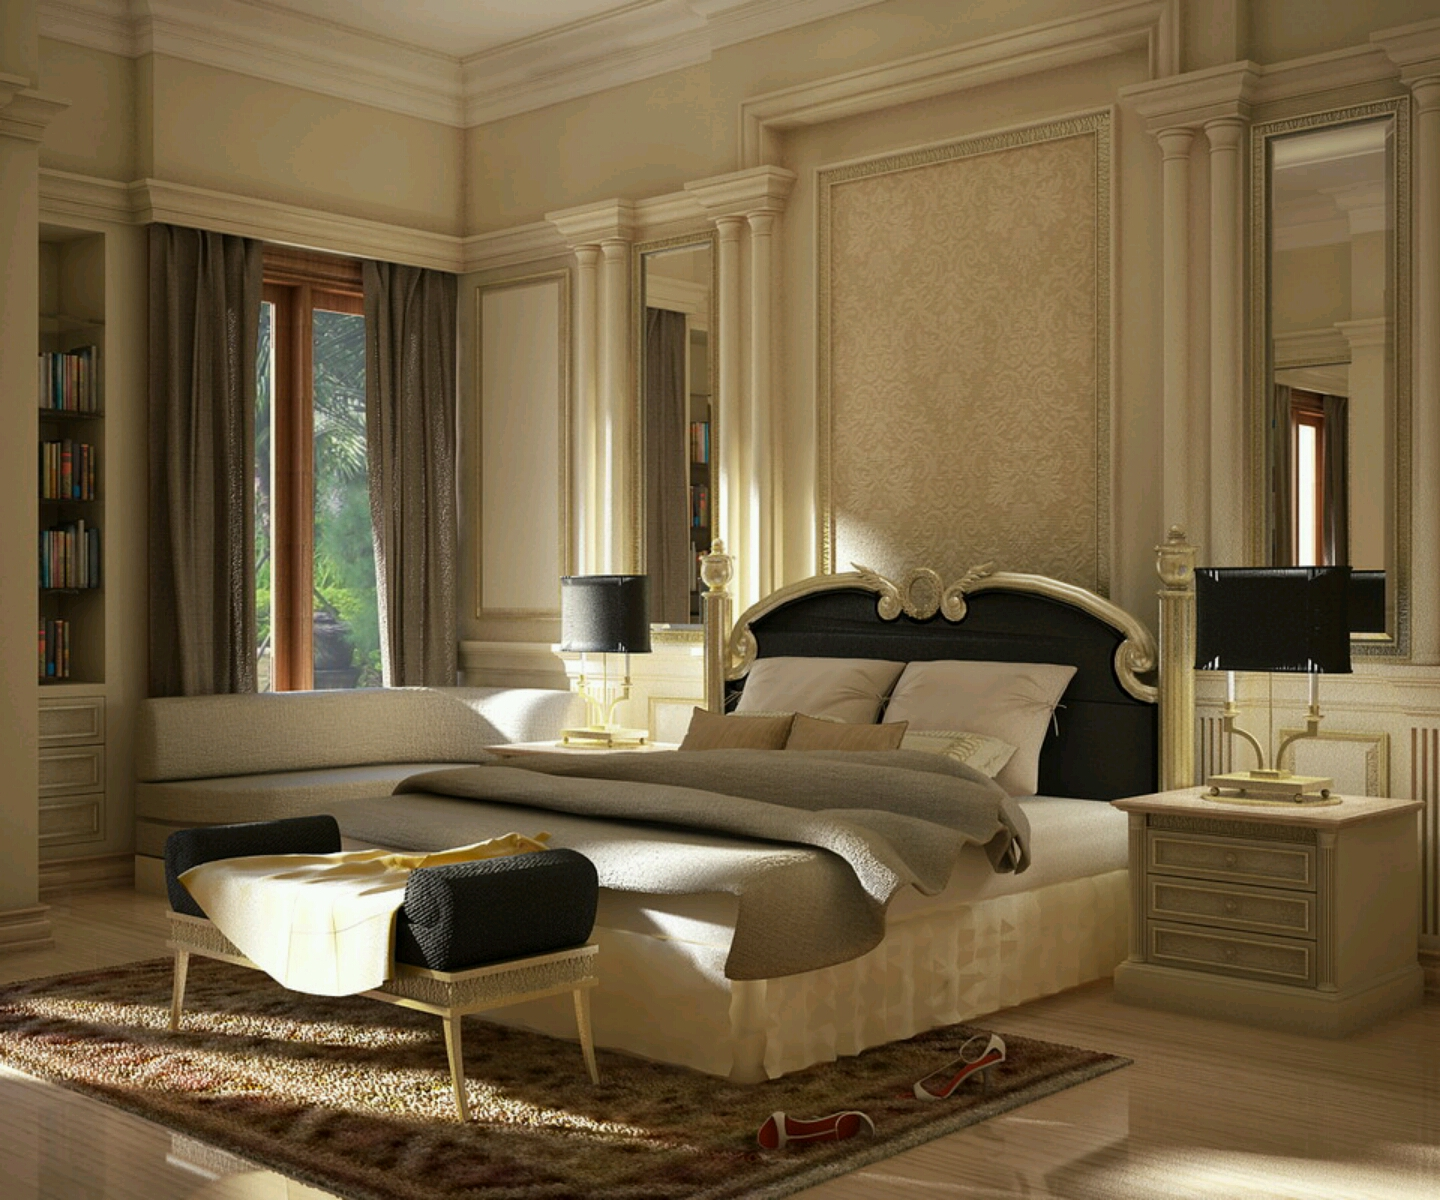 Modern luxury bedroom furniture designs ideas. ~ Furniture ...